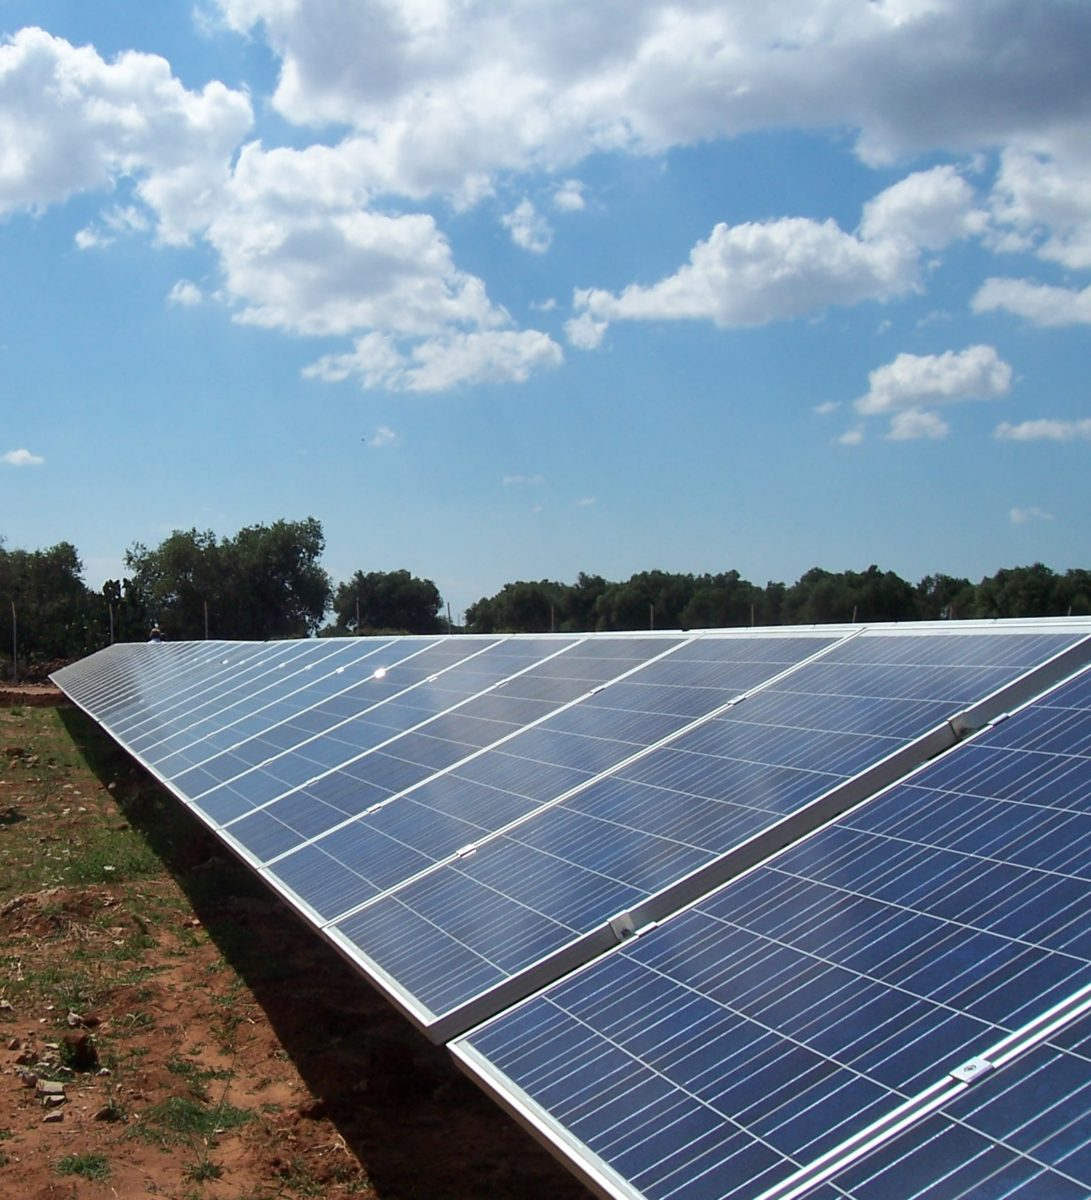 A MW-sized PV plant installed in Italy's southern region of Apulia.